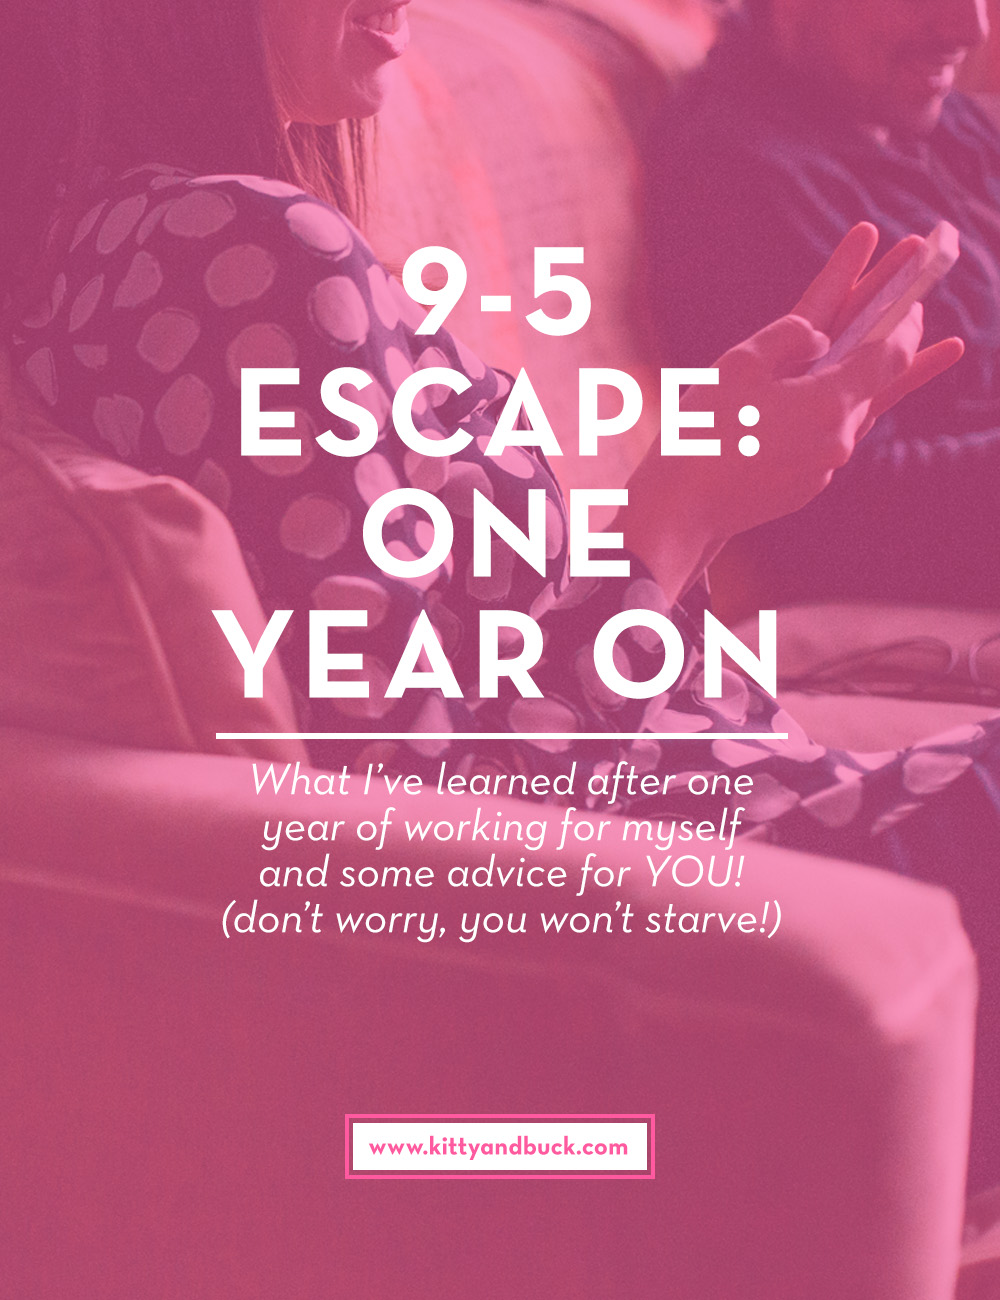 One year after making the leap from full-time 9-5 work, Shell reflects on lessons learned, mistakes made and some encouragement for those who are self-employed, or thinking about making the escape! Click through to read what NOT to do, and a few extra tips on making the most out of your newfound freedom | by Kitty & Buck